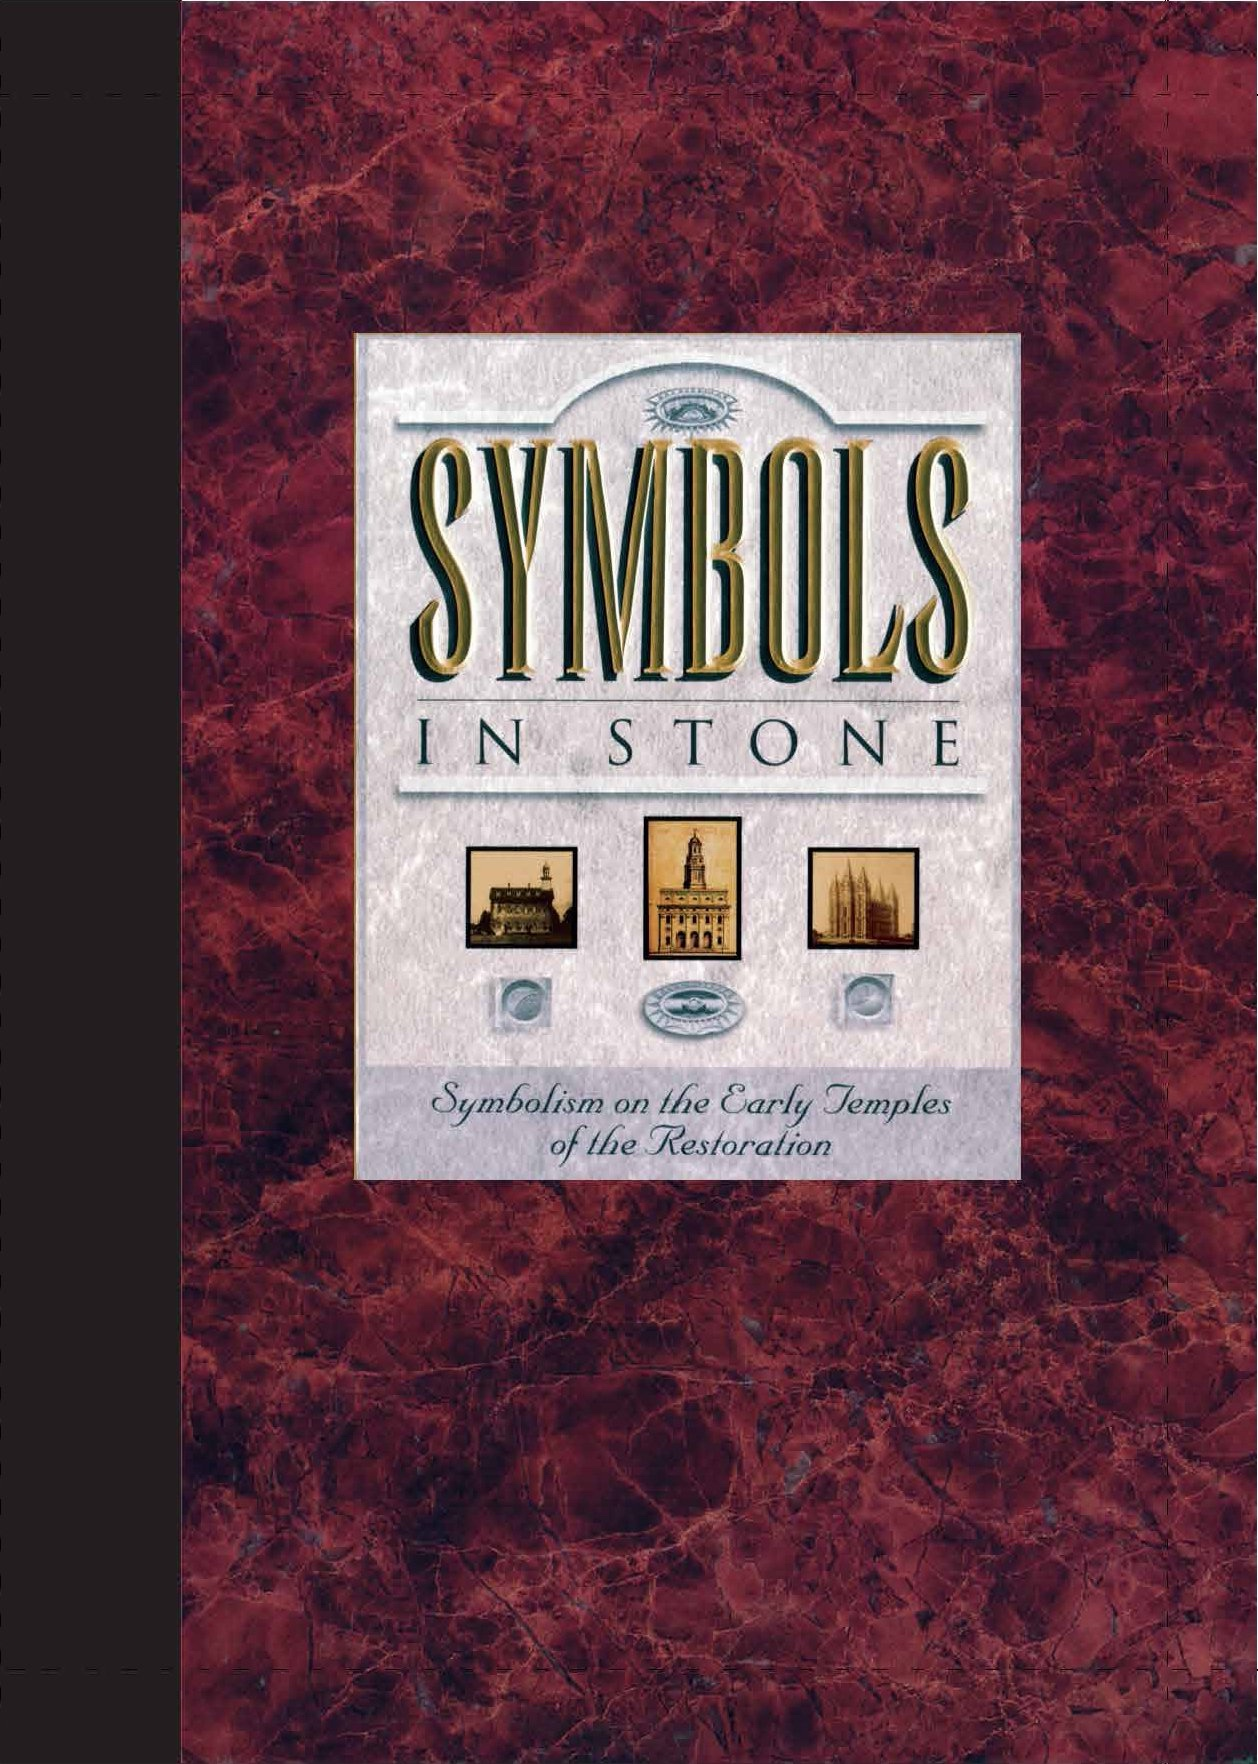 Symbols in Stone, Brown, Matthew B. & Paul Thomas Smith